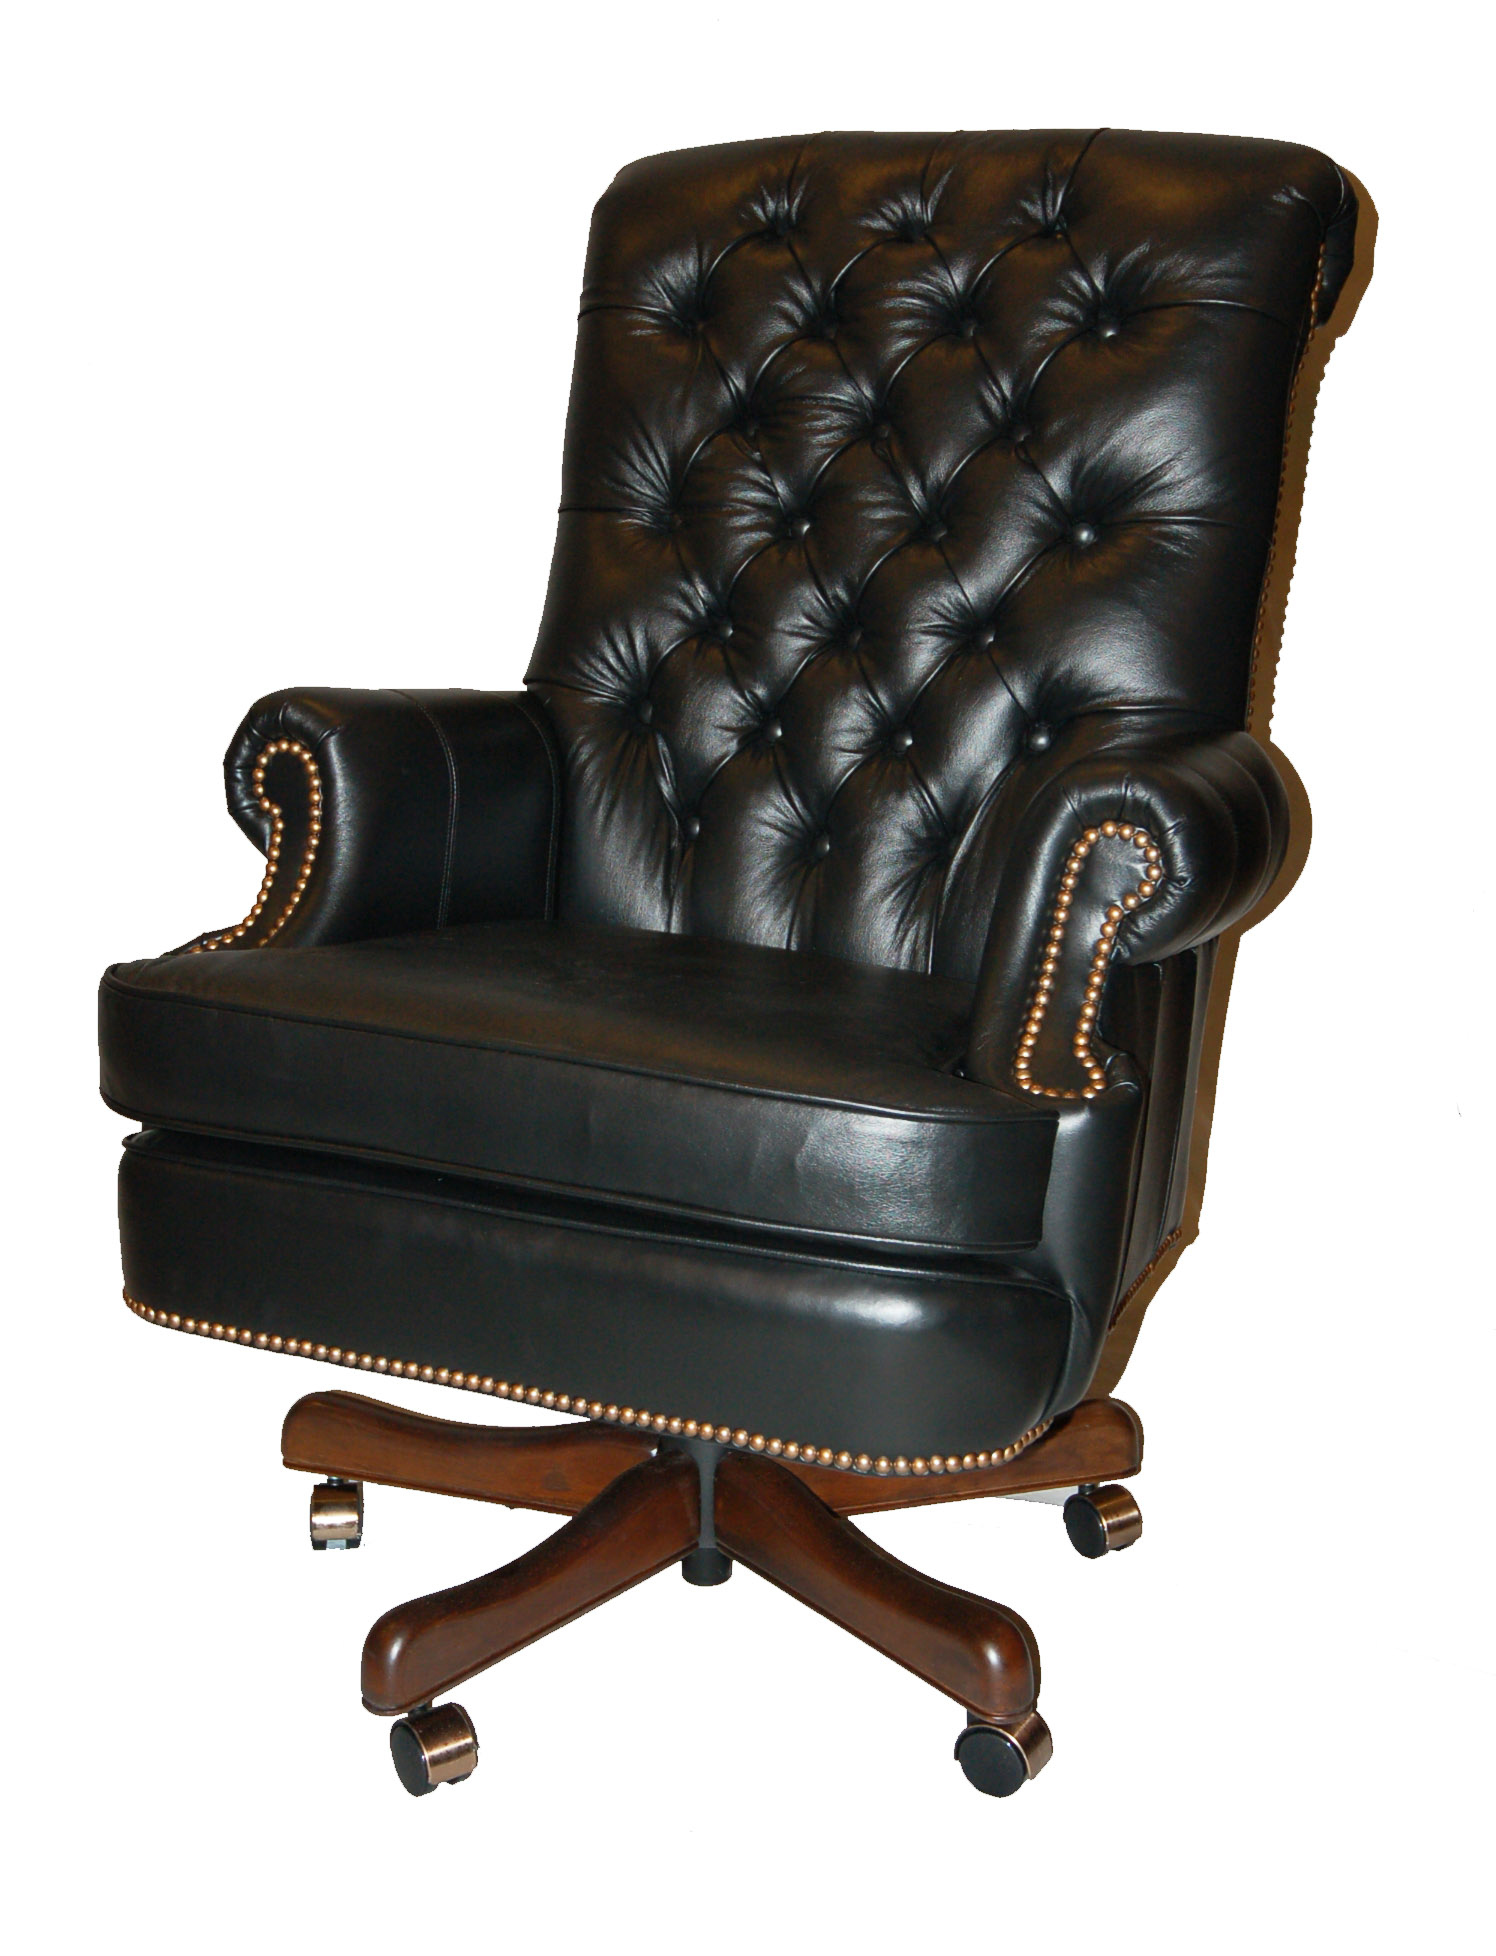 Fairfield Large Black Leather Executive Desk Chair With